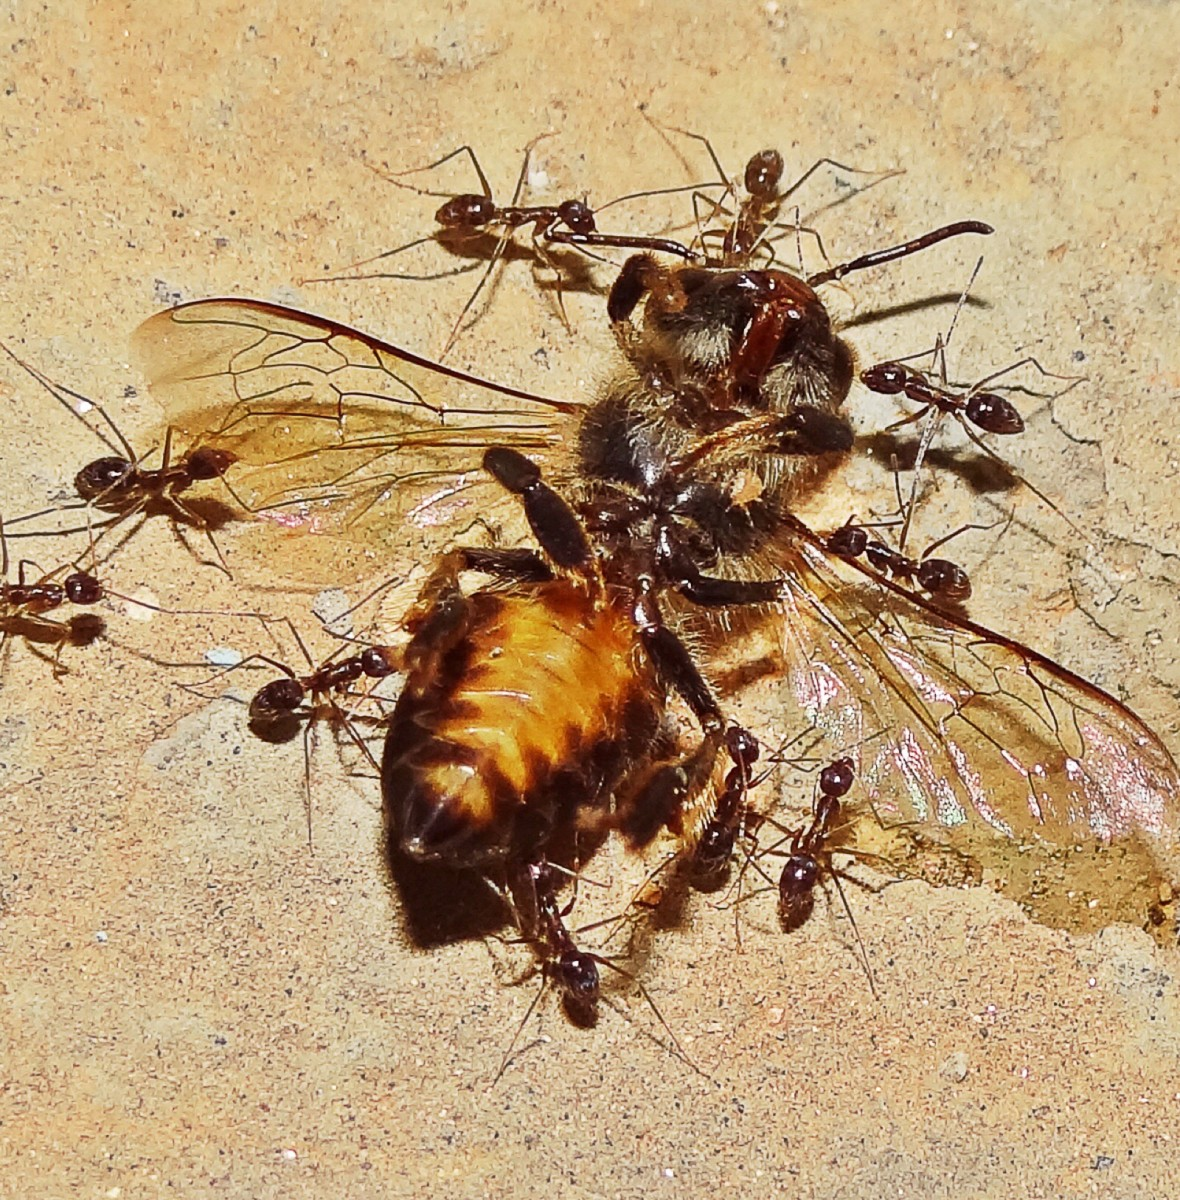 Carpenter ants carrying a dead bee